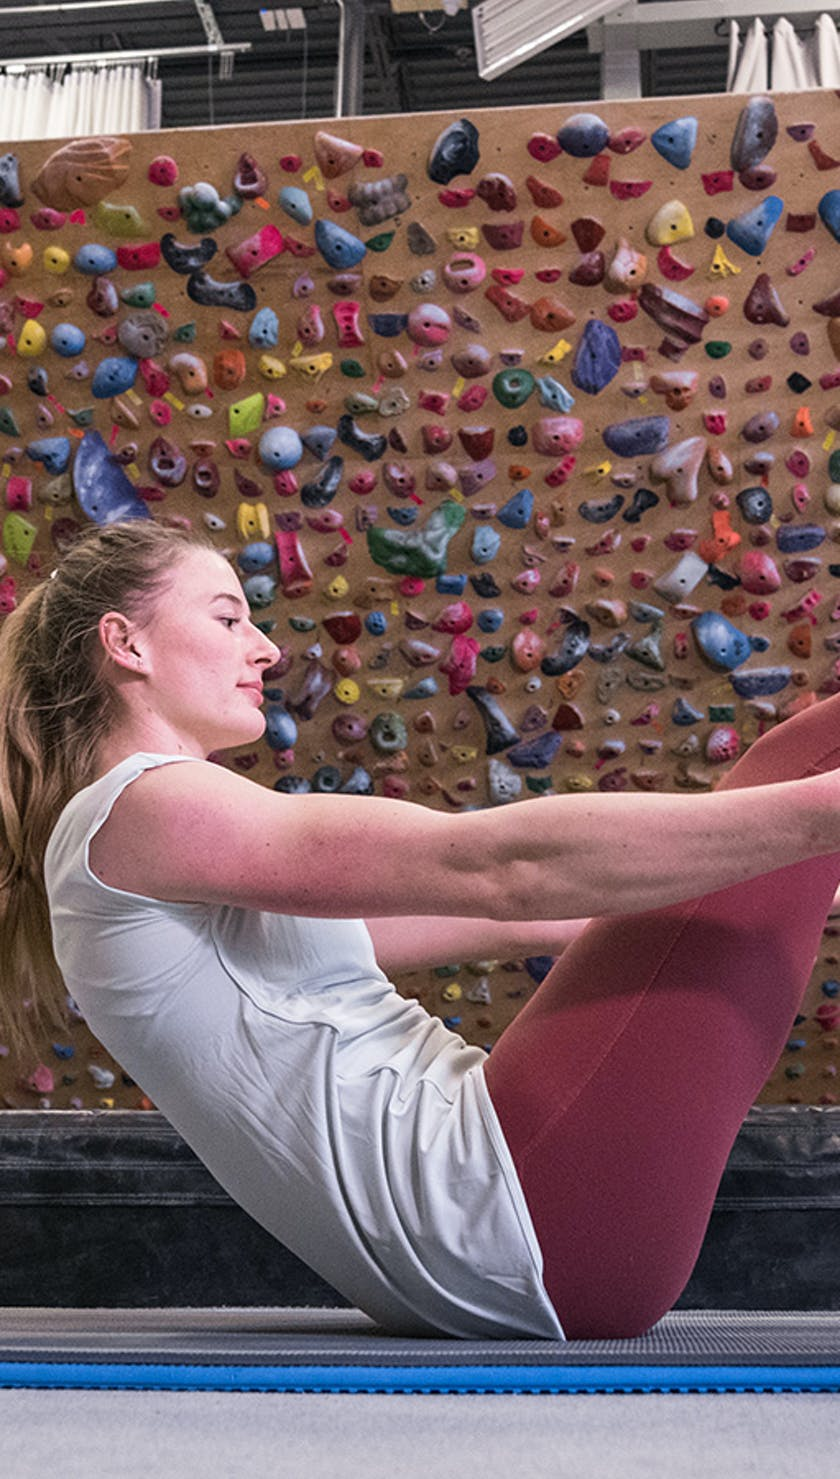 Image of Claire Buhrfeind performing core exercises in a gym.